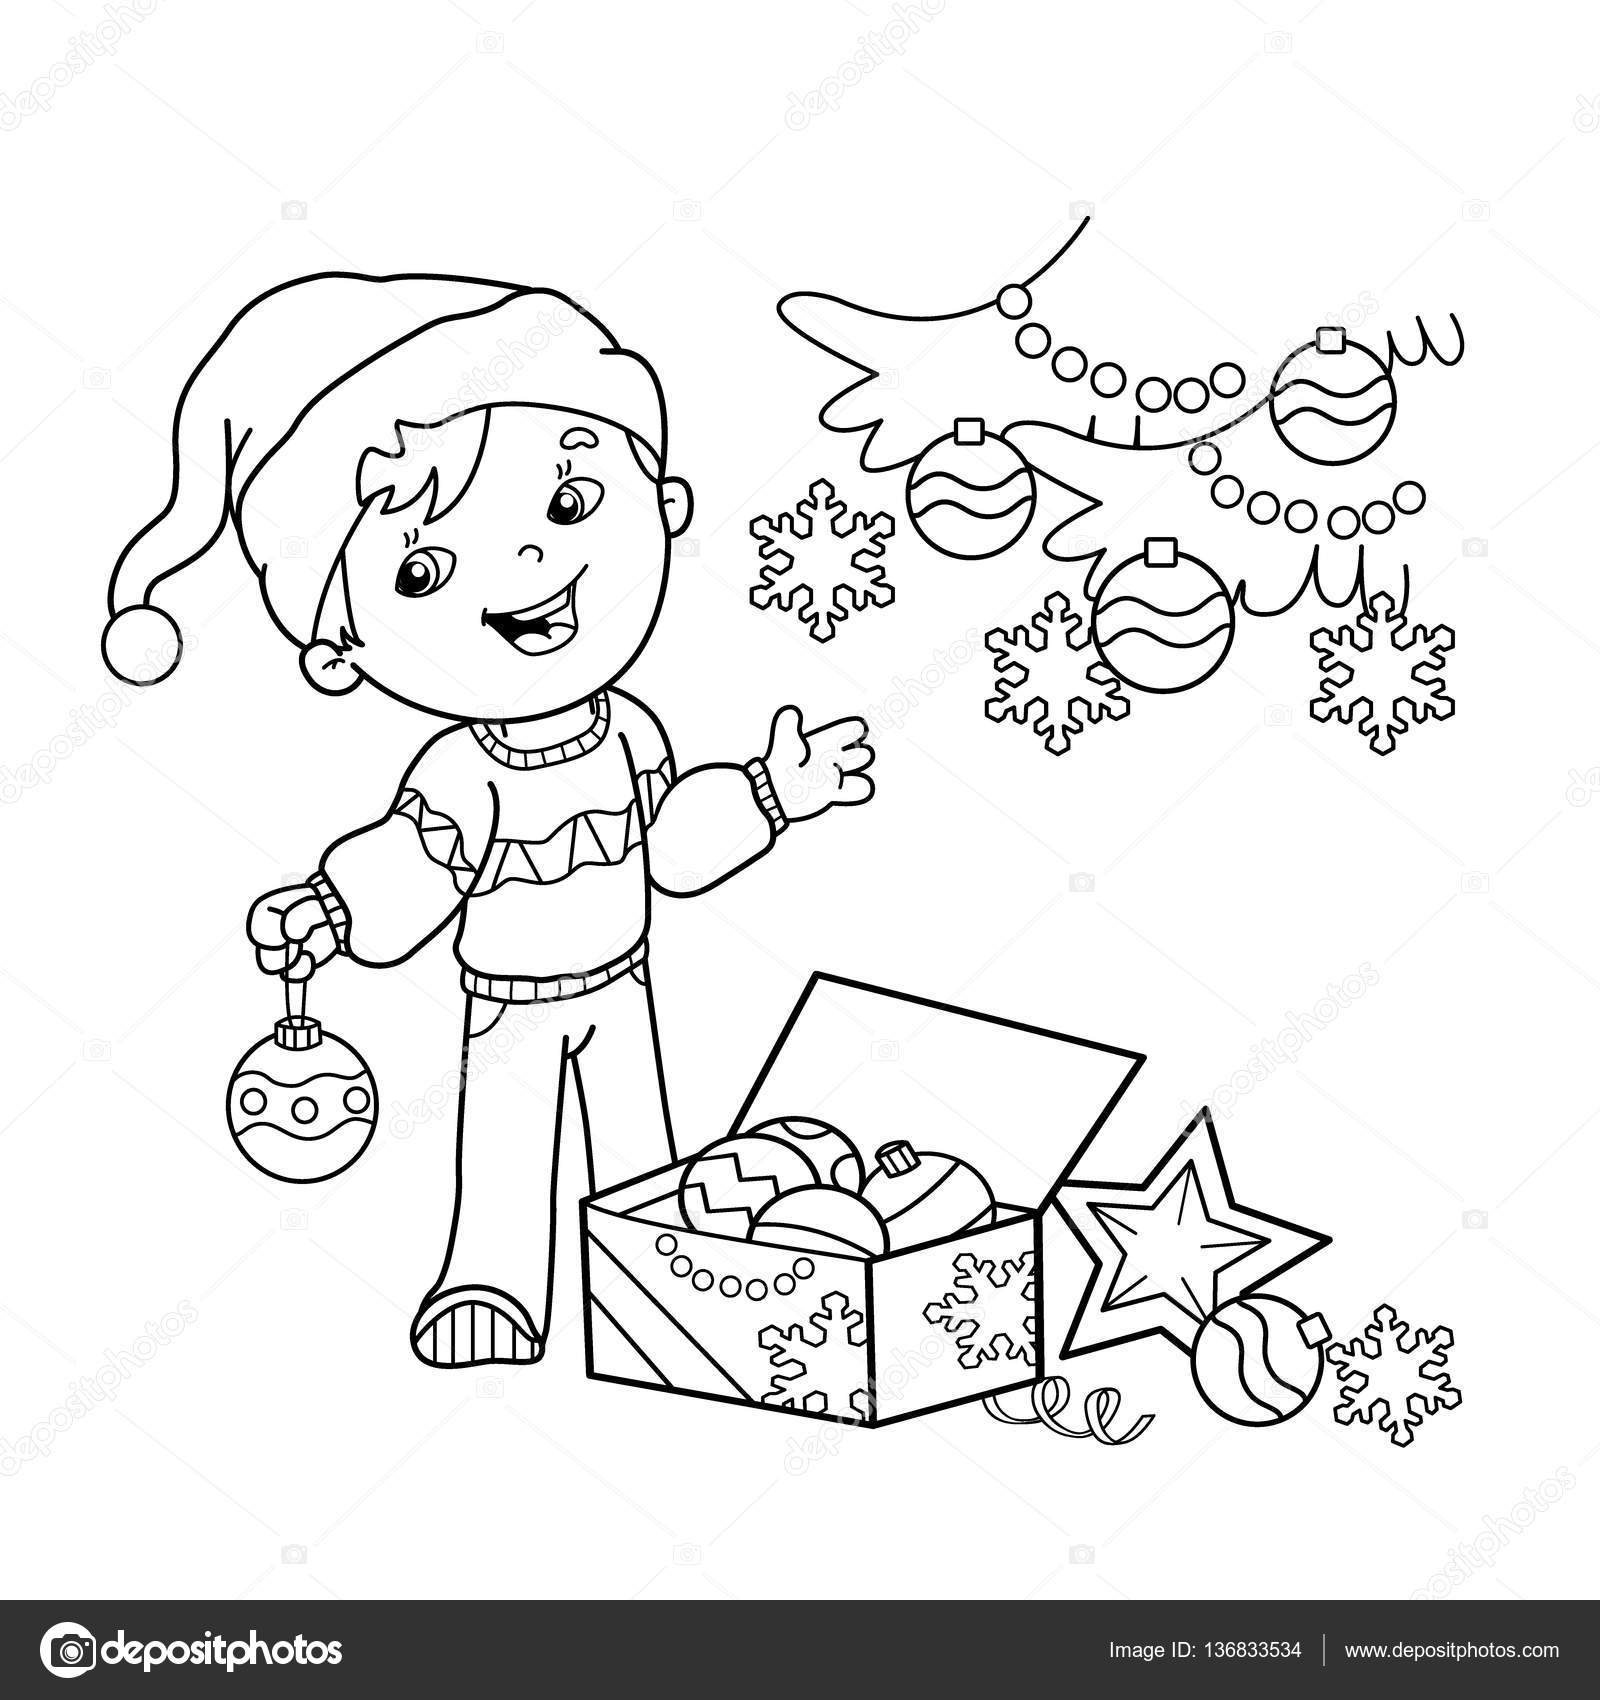 Coloring Page Outline Of Cartoon Boy Decorating The Christmas Tree With Ornaments And Gifts